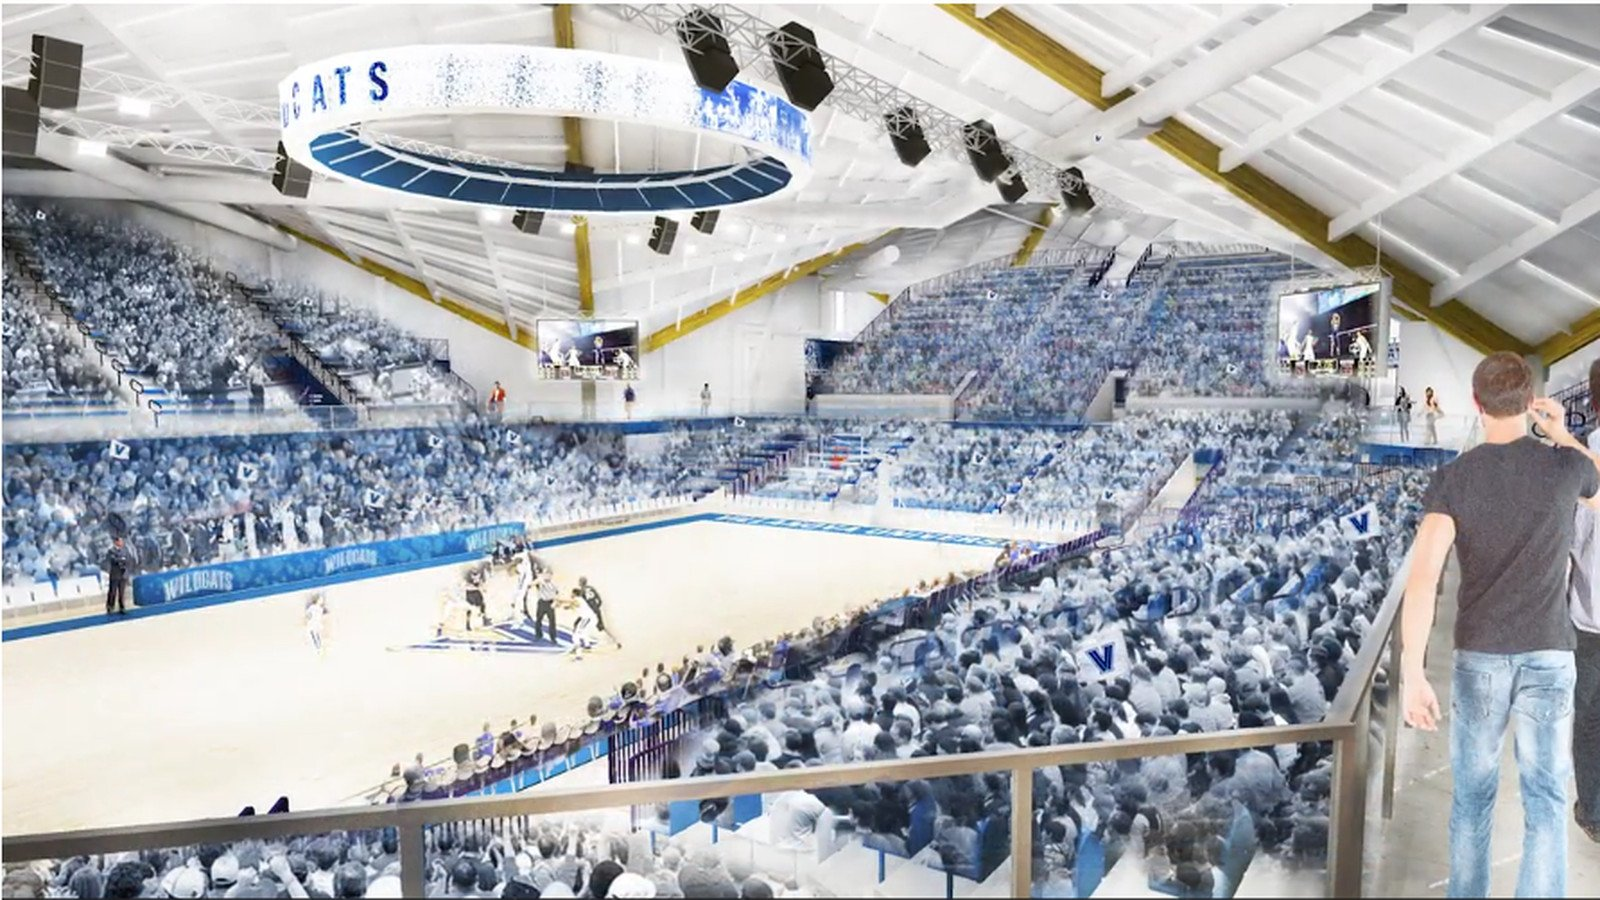 This image presents a graphical design of what the new Finneran Pavilion will look like when the project is finished (Lane, 2017)